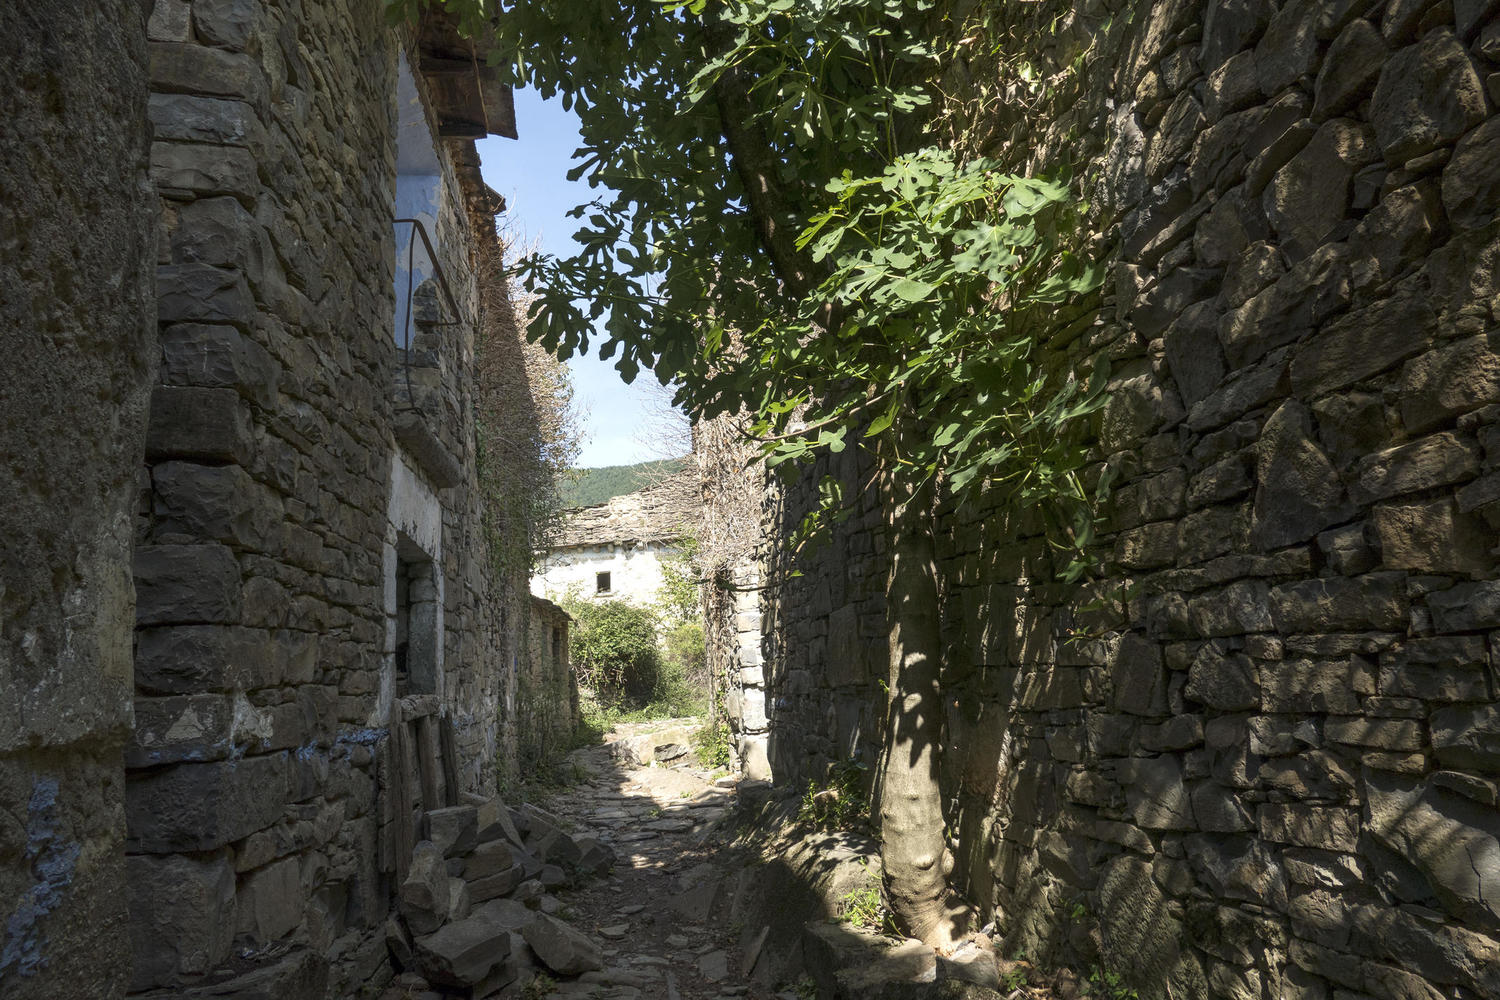 Abandoned village in Solana